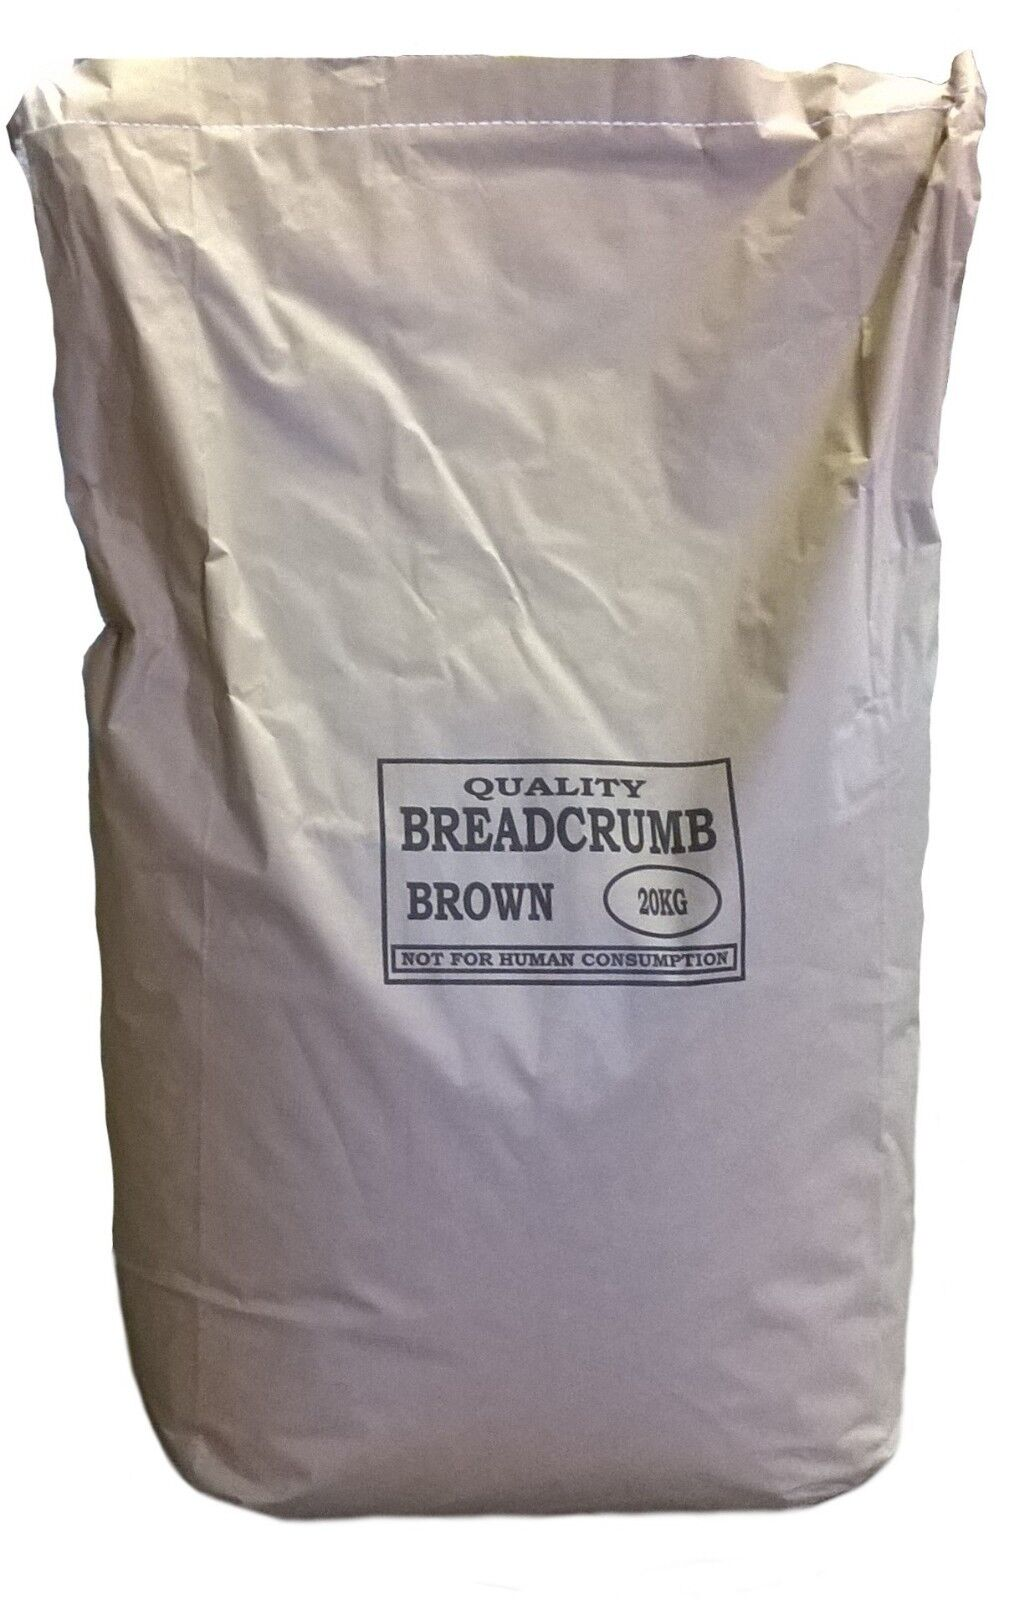 FISHING BAIT - BROWN BREAD CRUMB GROUNDBAIT FOR COARSE AND CARP 20KG BAG